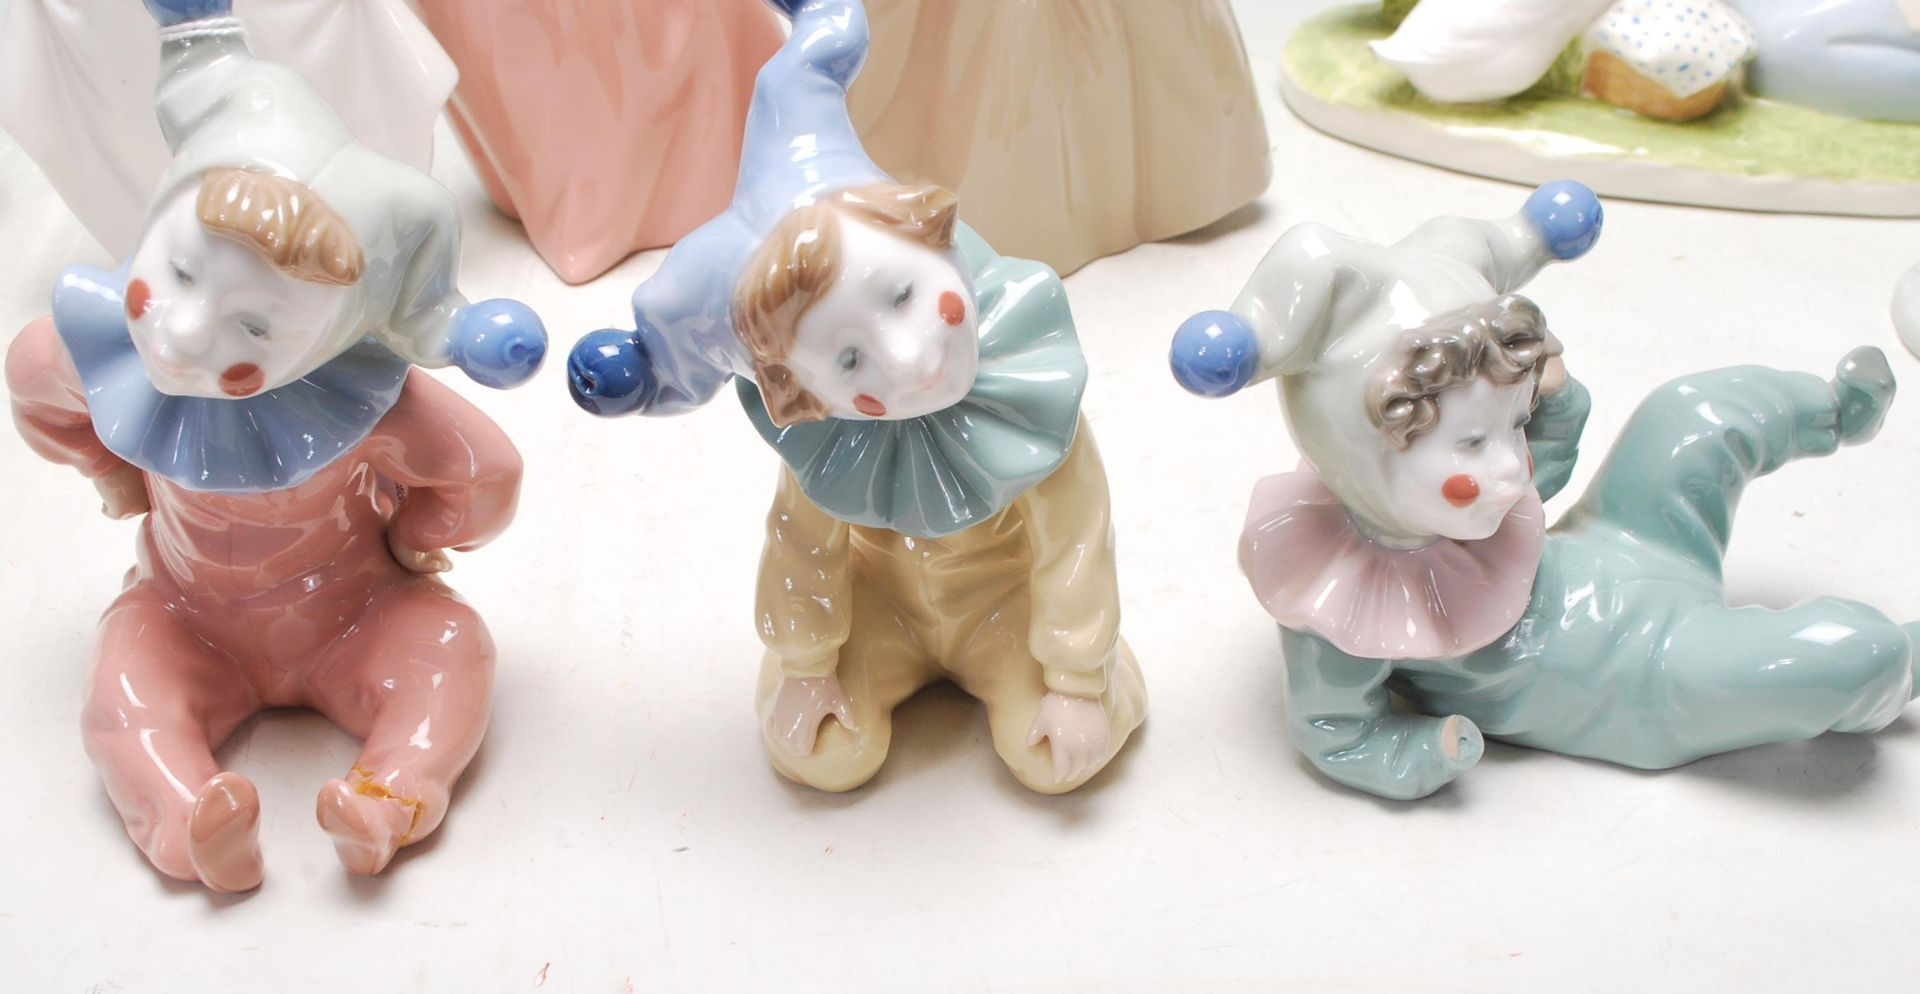 COLELCTION OF LATE 20TH CENTURY CERAMIC PORCELAIN NAO FIGURINES - Image 3 of 8